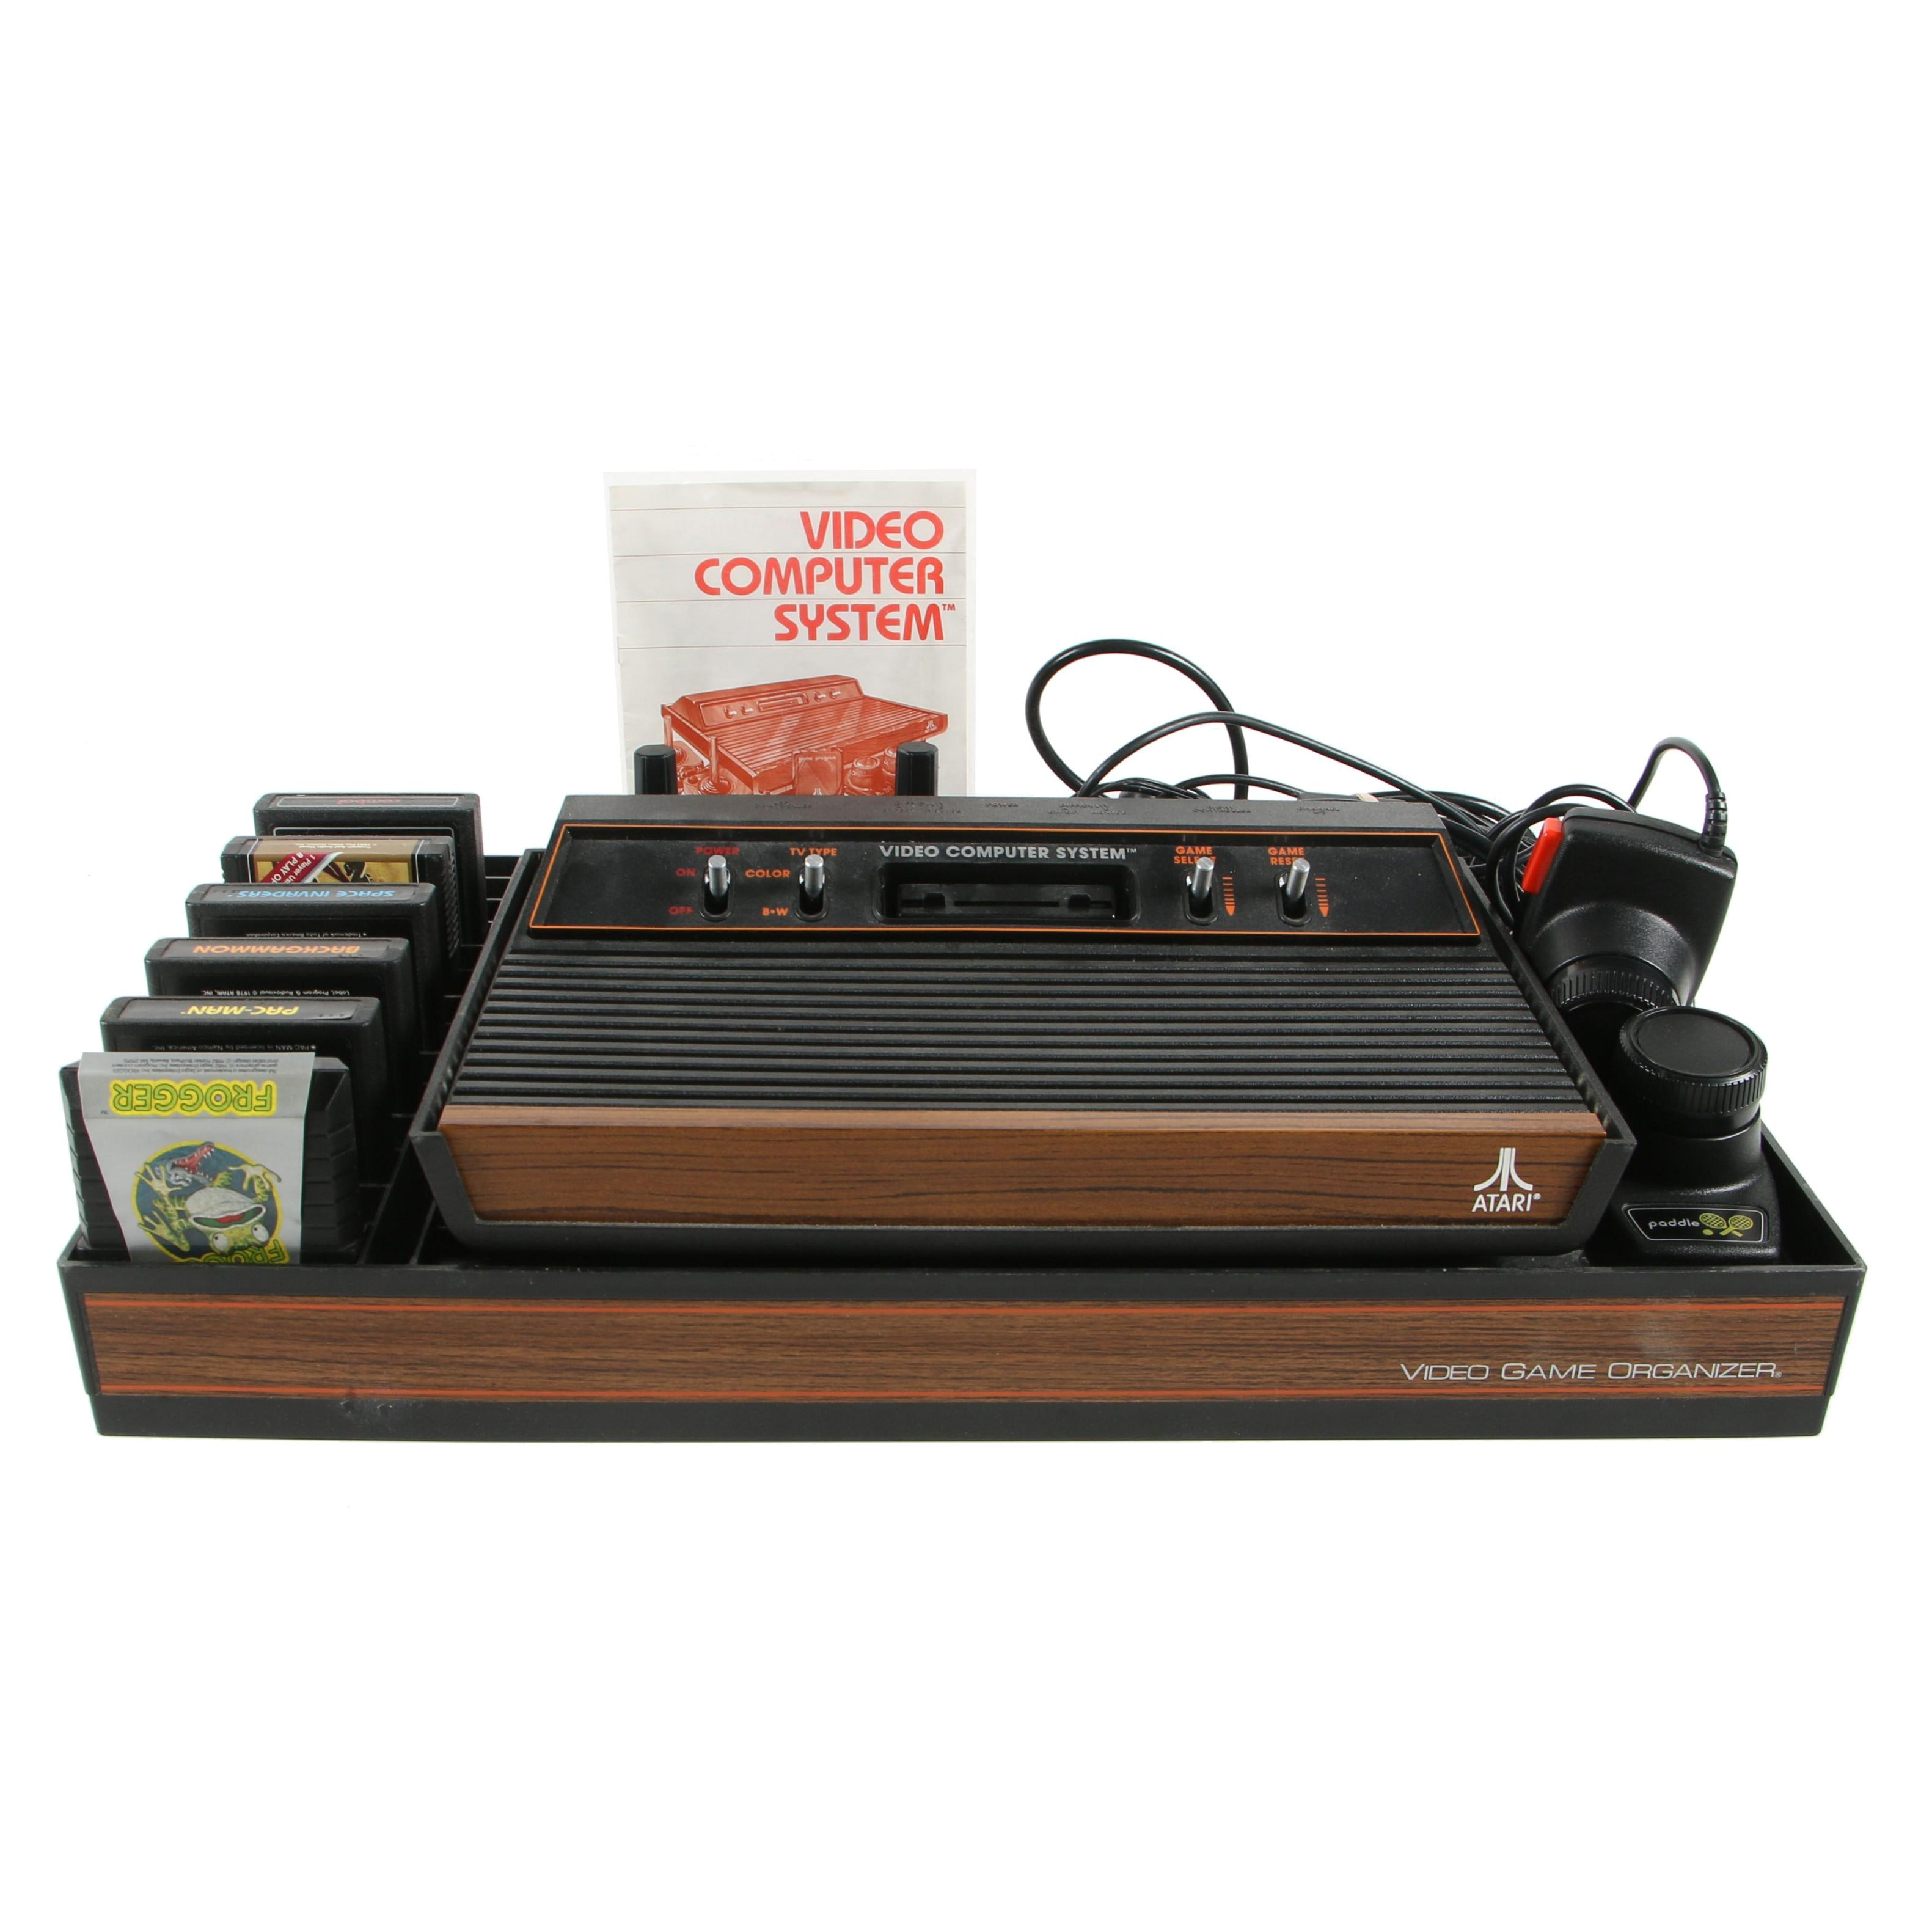 Atari Video Computer System with Games and Organizer